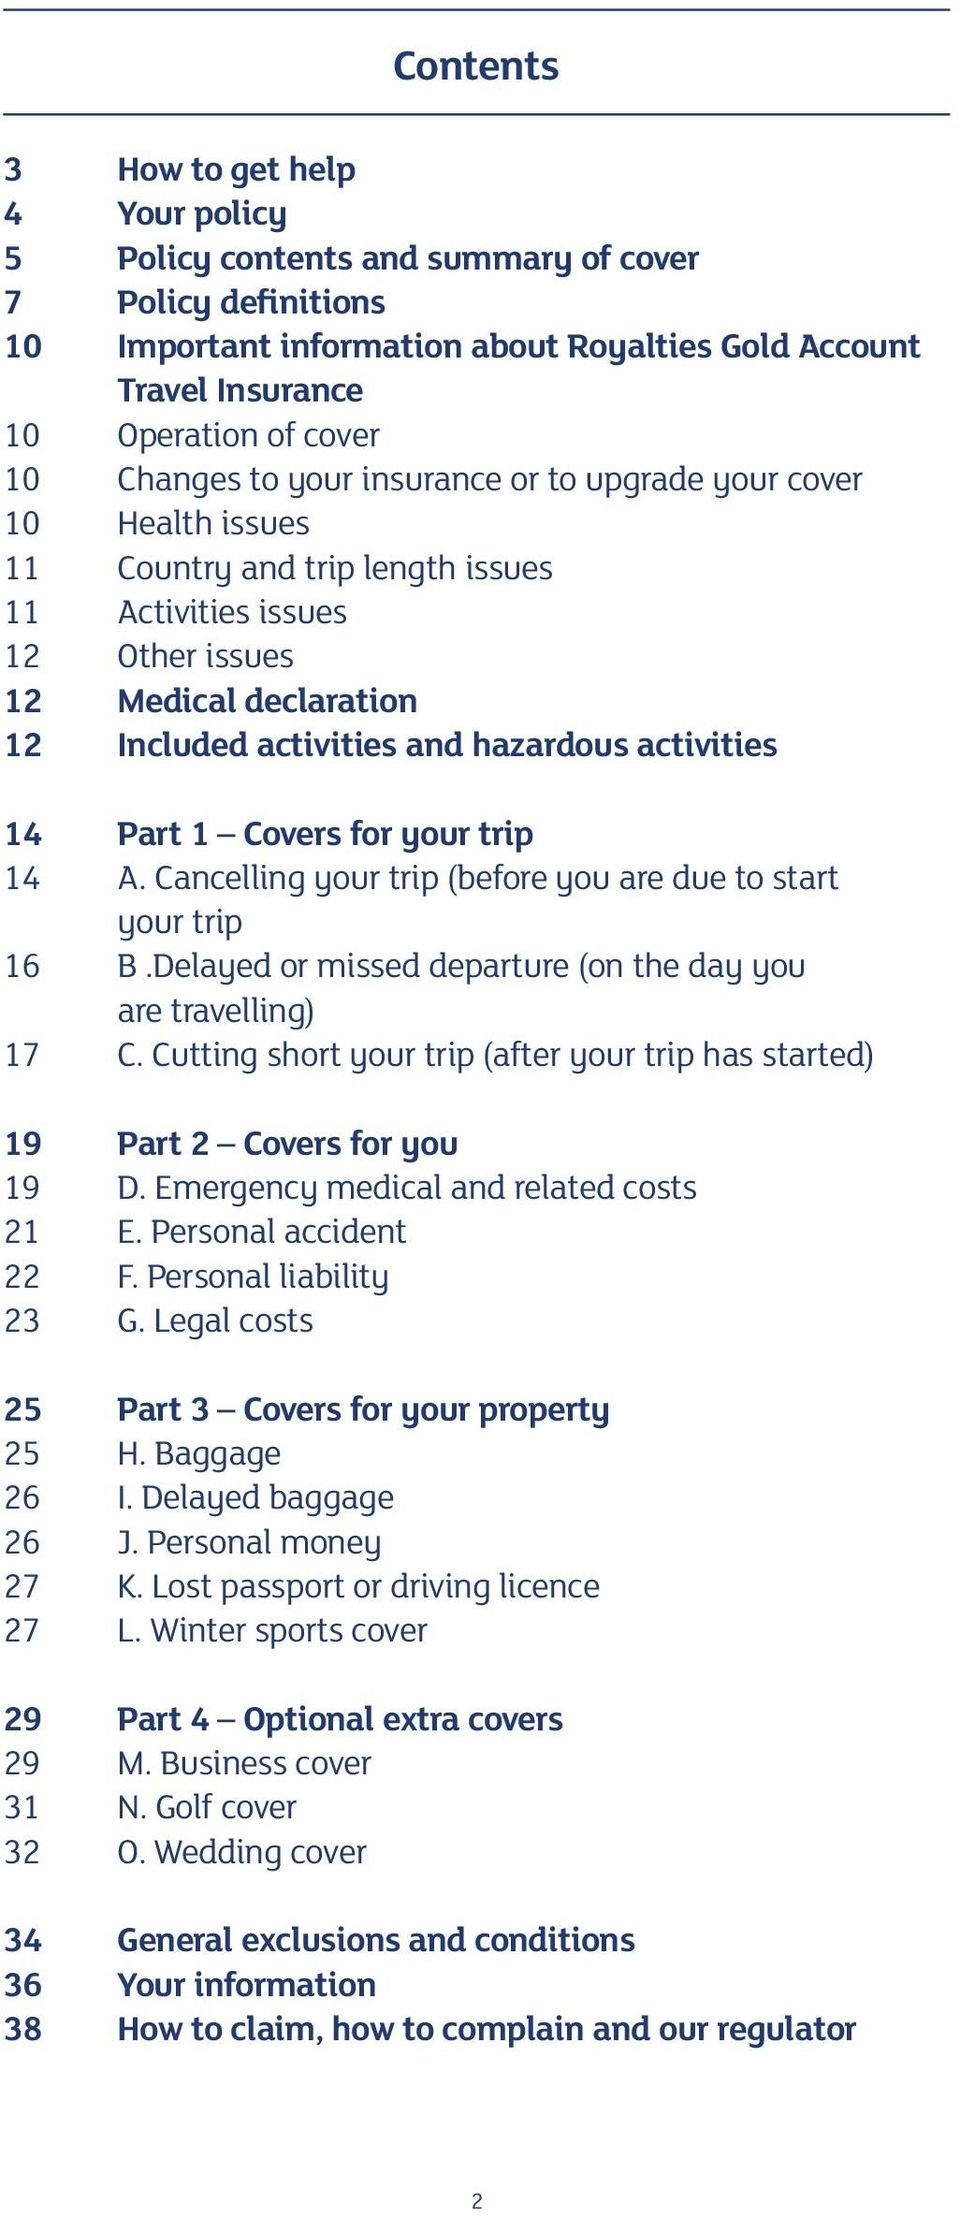 activities 14 Part 1 Covers for your trip 14 A. Cancelling your trip (before you are due to start your trip 16 B.Delayed or missed departure (on the day you are travelling) 17 C.